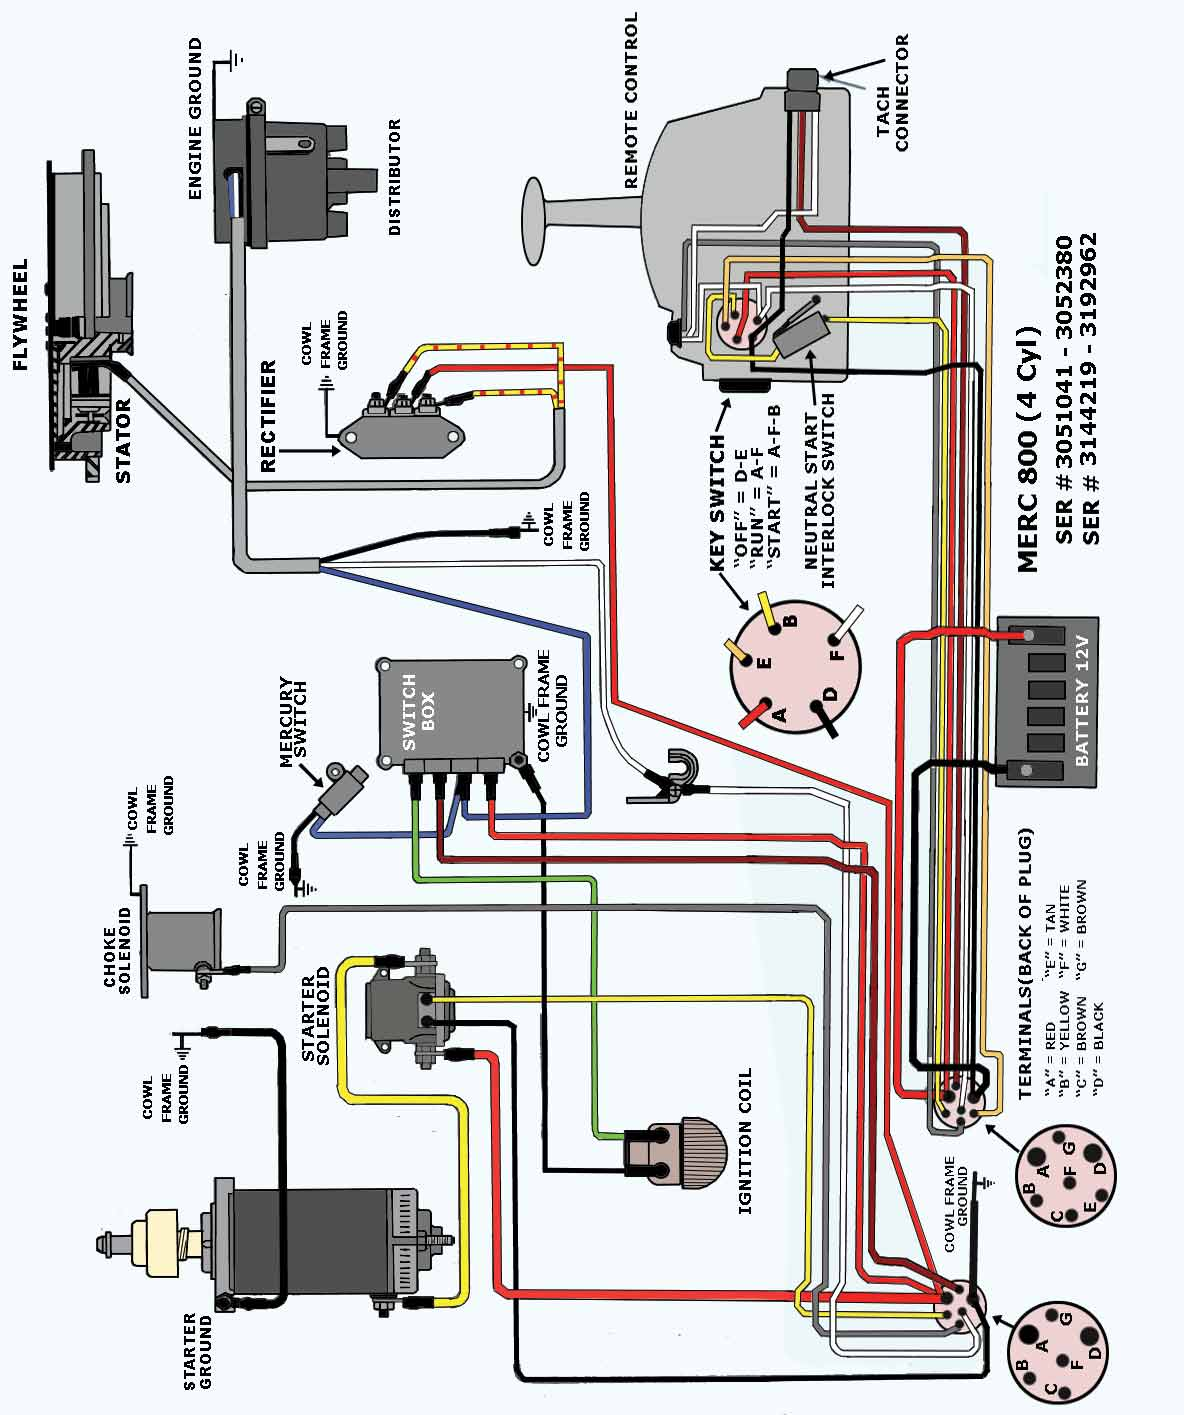 Pleasing Mercury Outboard Ignition Switch Wiring Diagram Wiring Diagram M6 Zipur Mohammedshrine Wiring Diagrams Zipurmohammedshrineorg